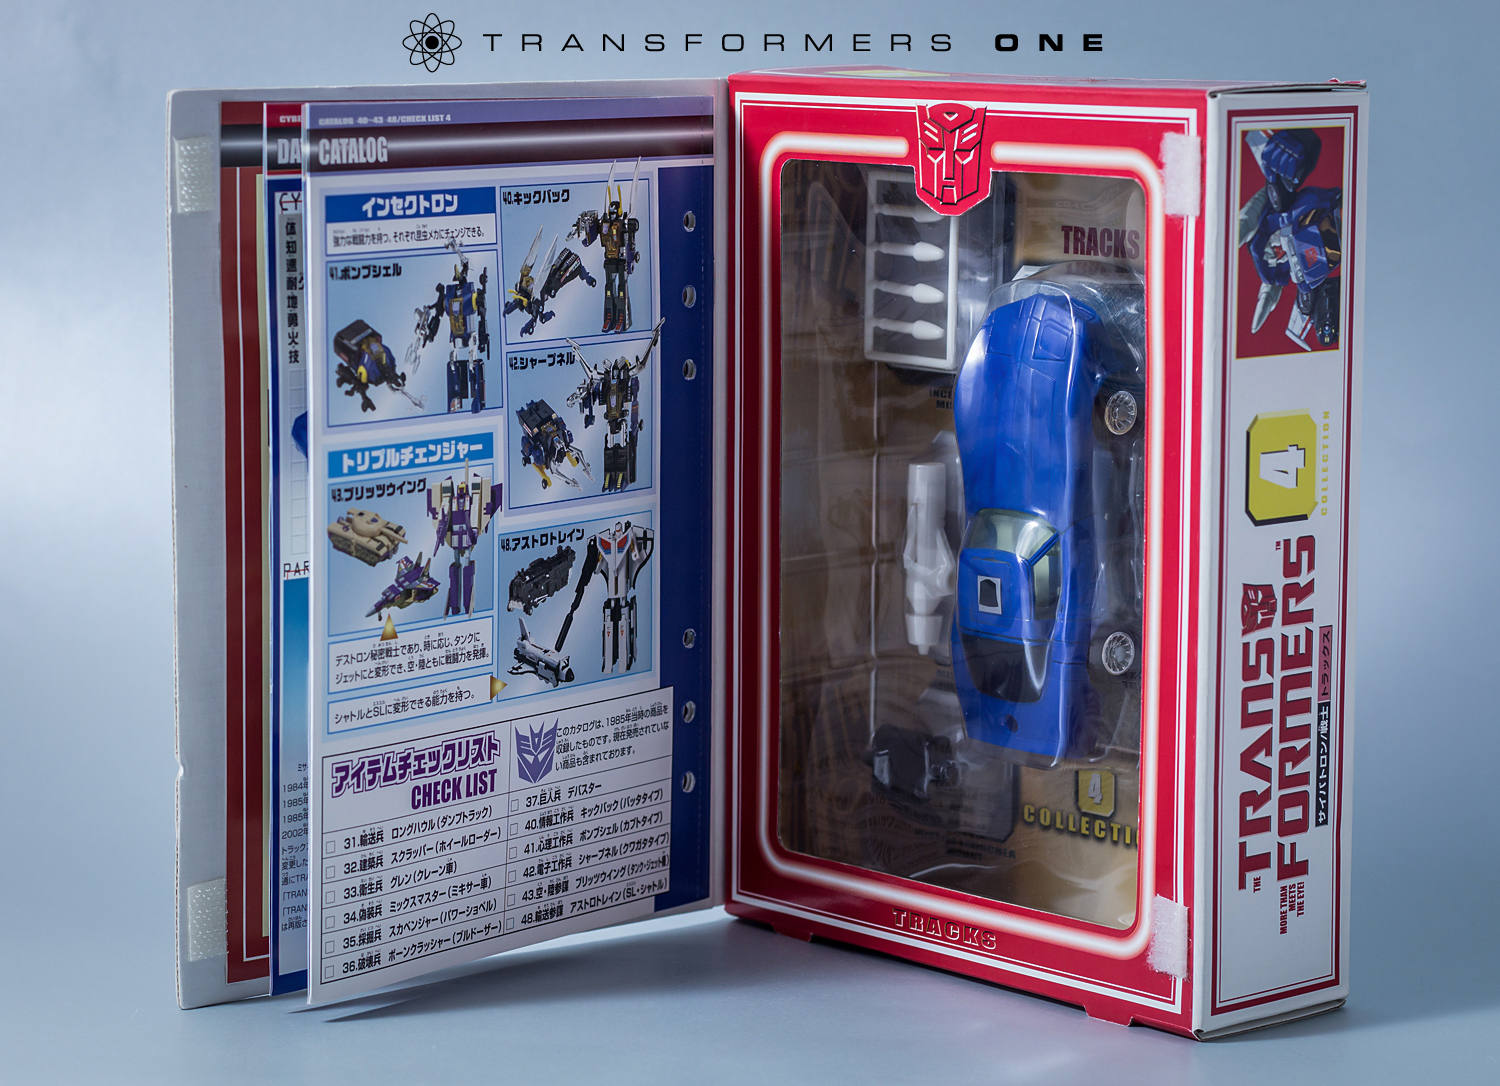 Square One: The Mysterious G1 Tracks Stickers